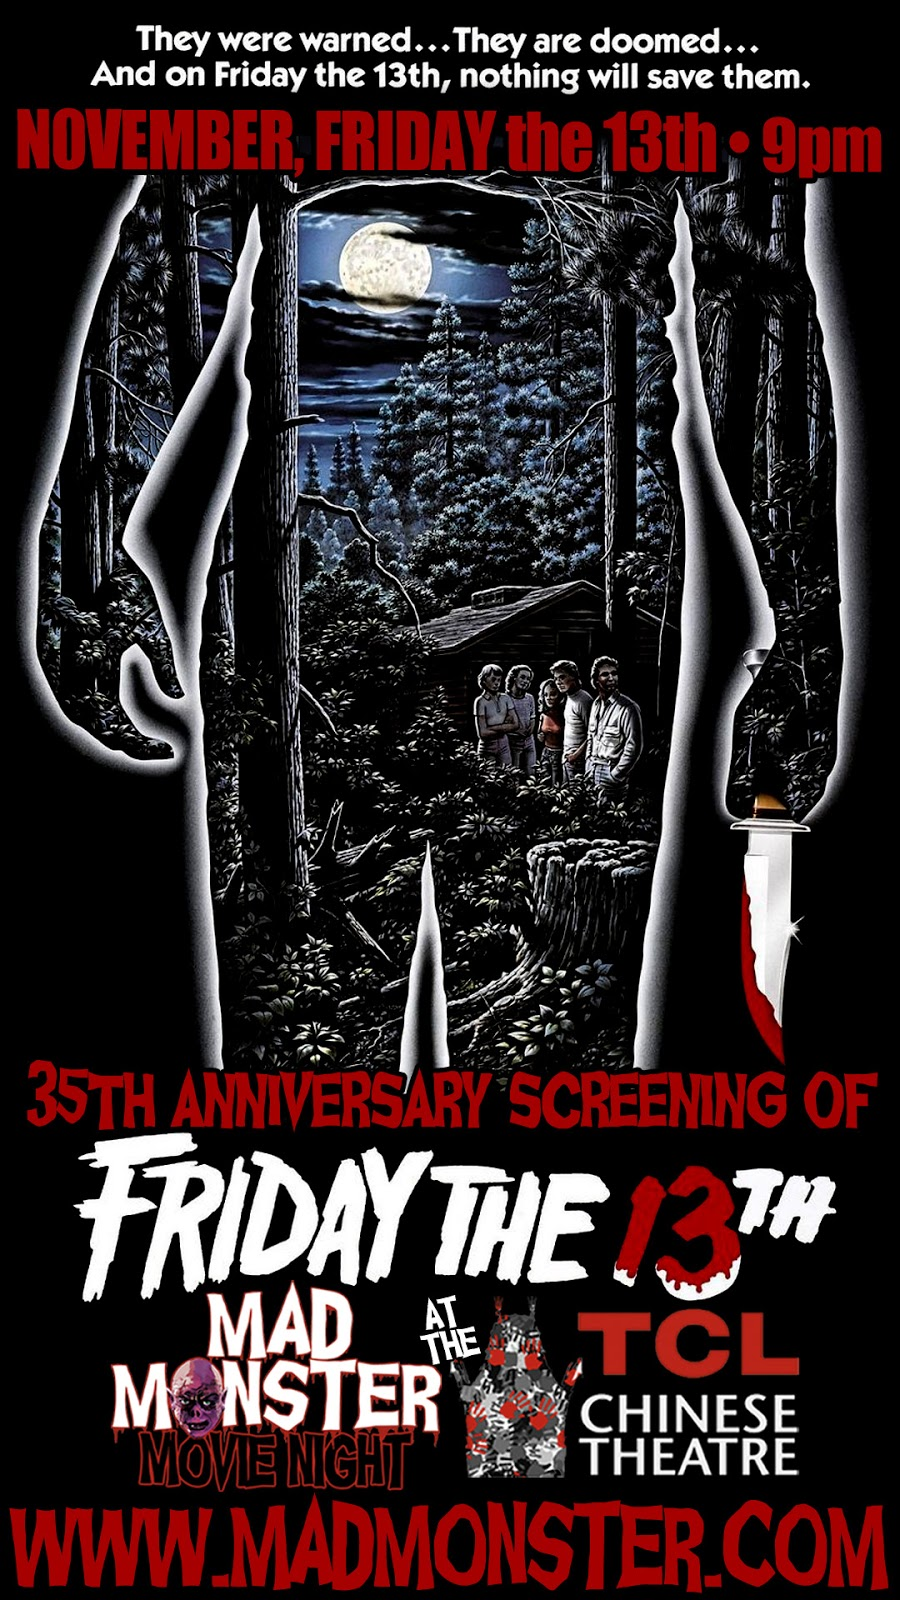 At historic tcl chinese theatre friday the 13th the franchise